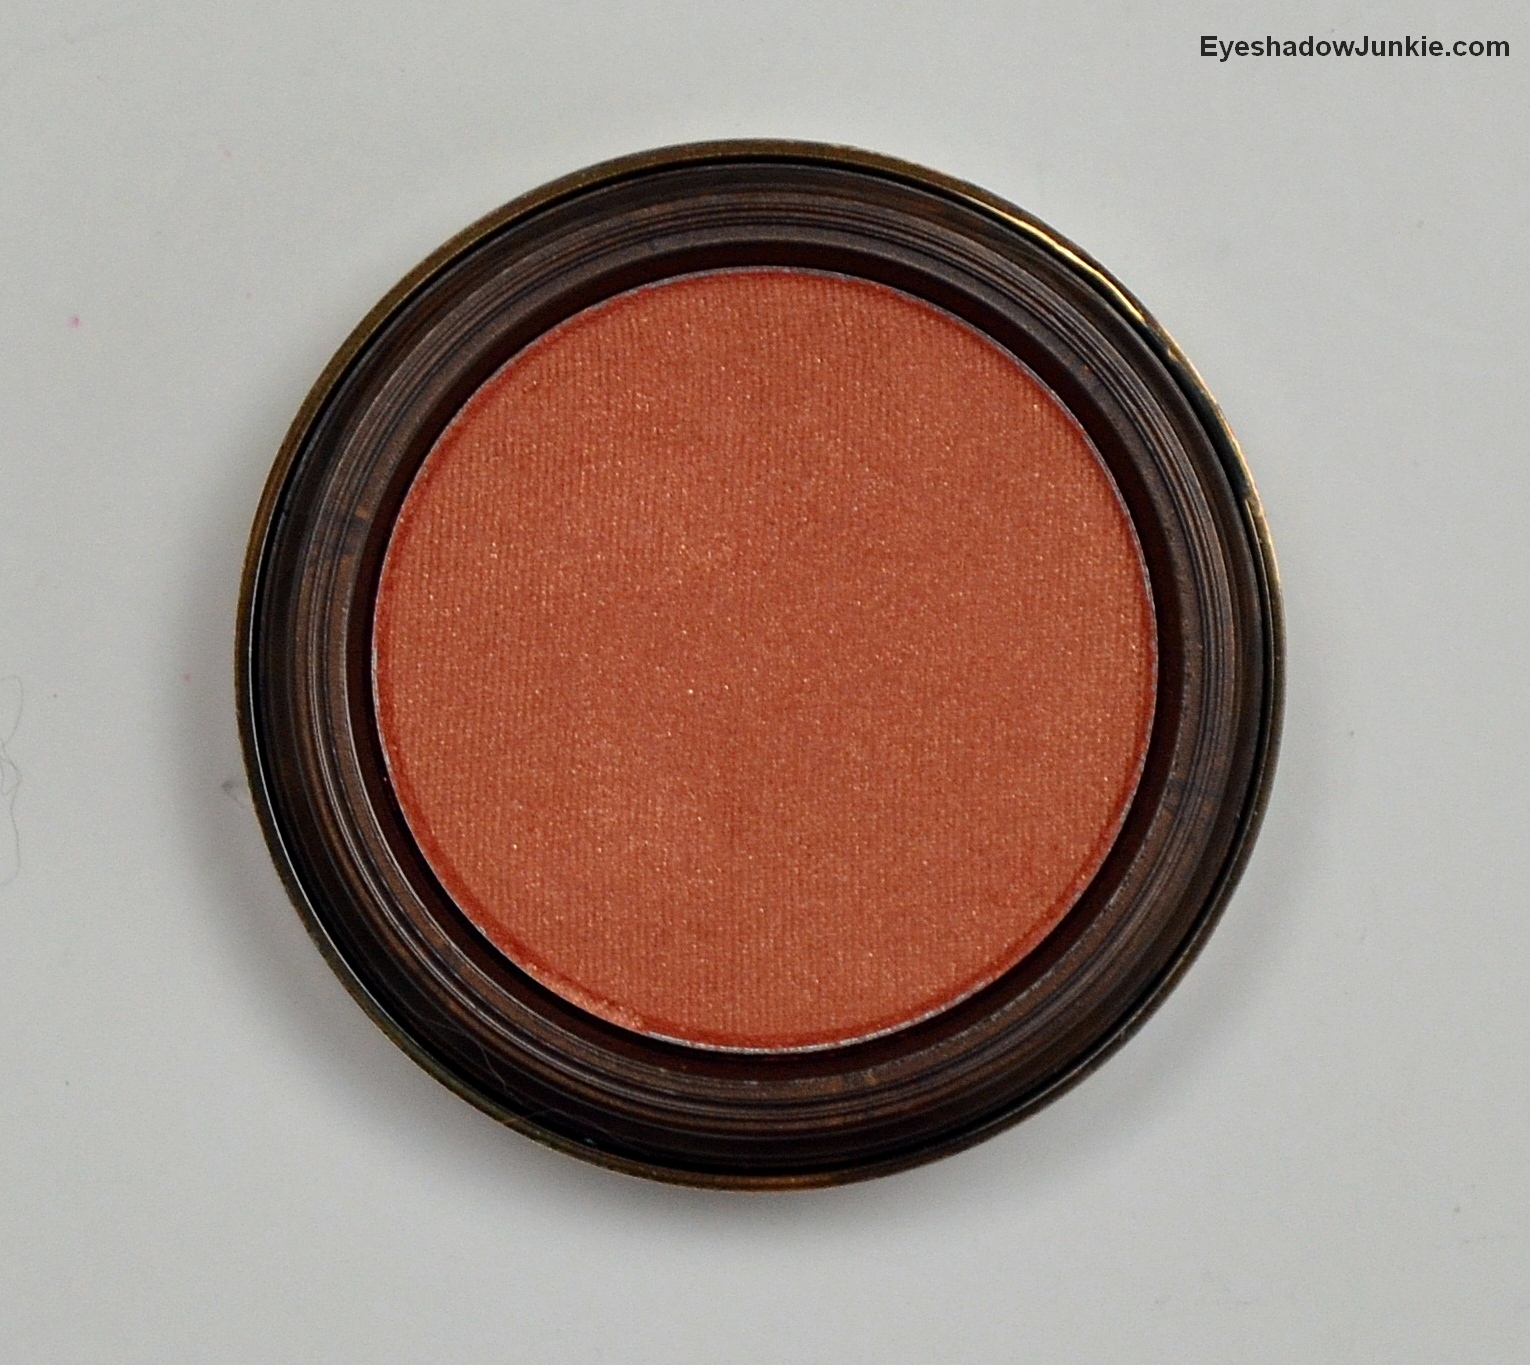 Fashion Fair Beauty Blush « Eyeshadow Junkie